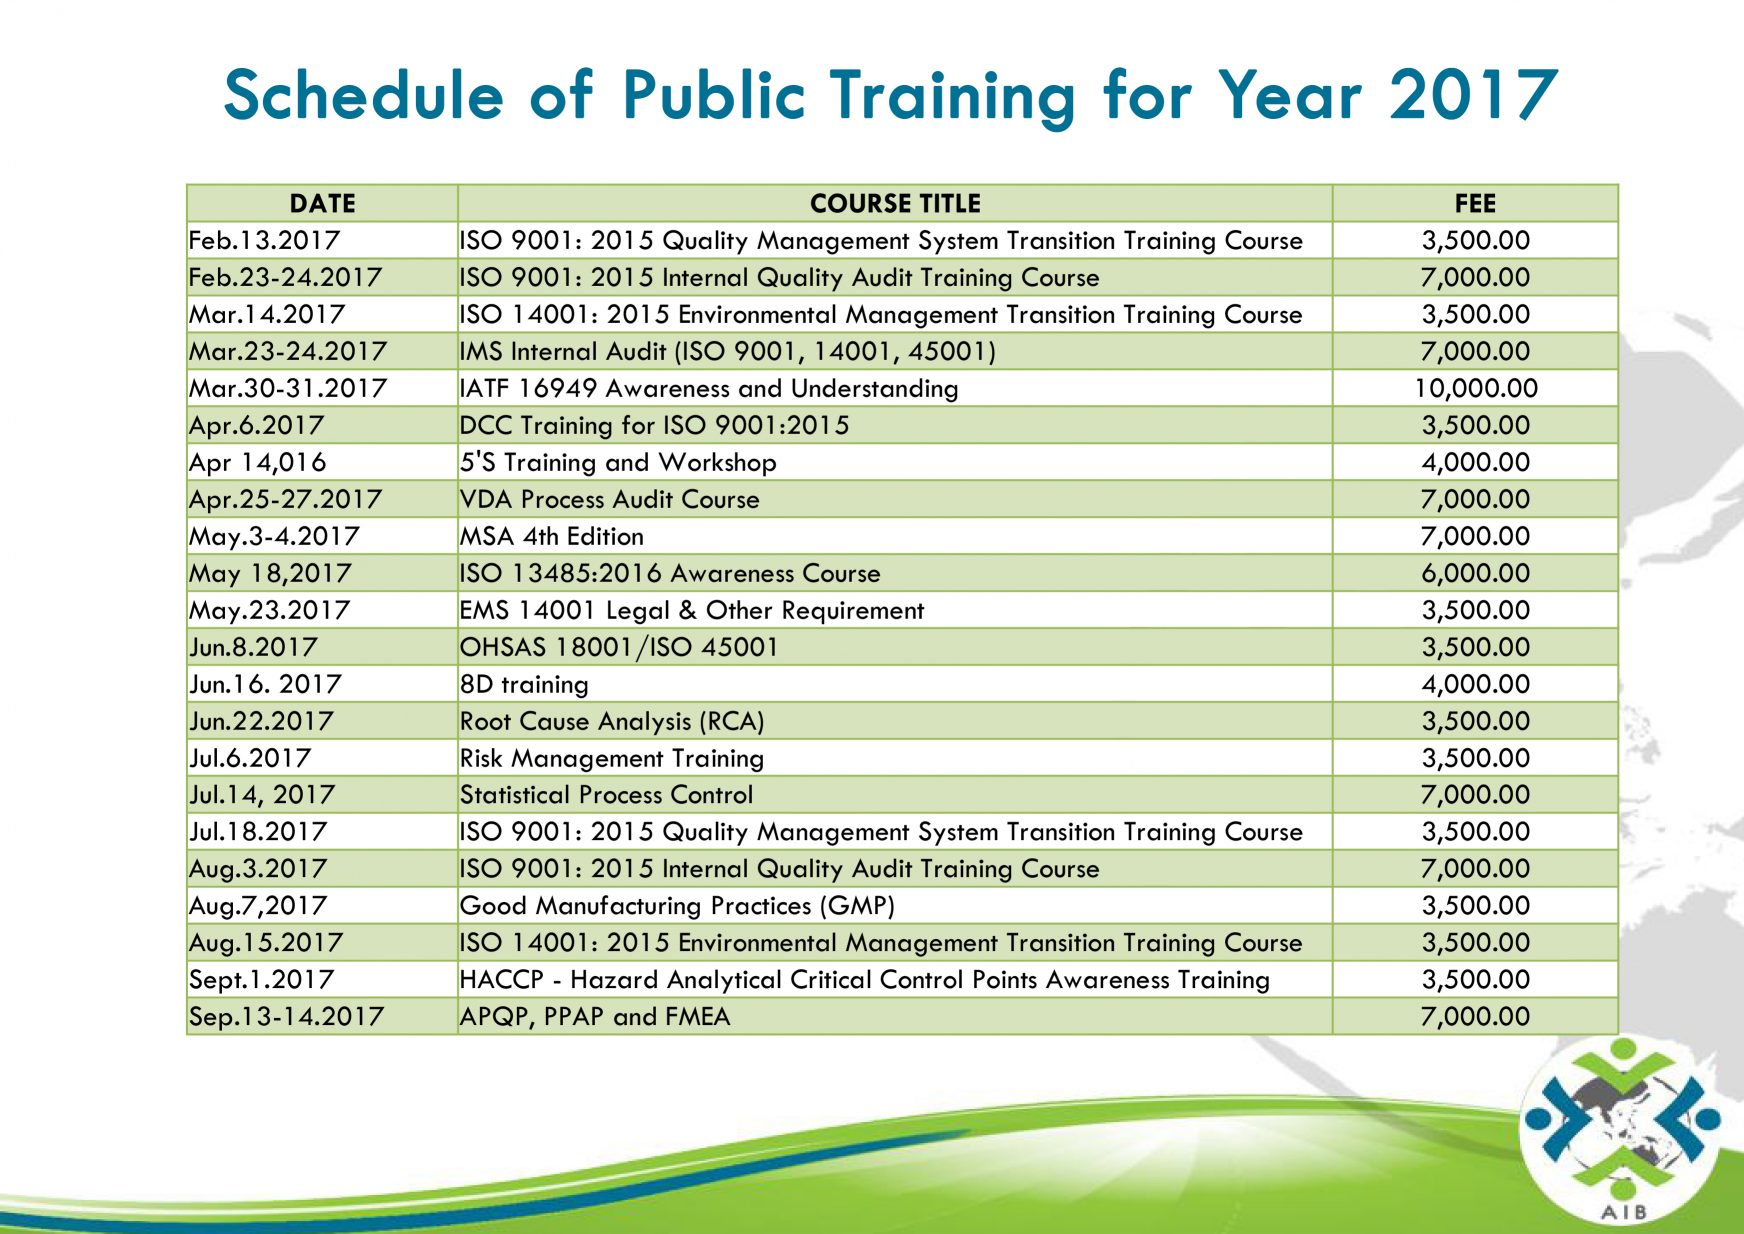 Our services industry specific aib philippines inc training schedule xflitez Choice Image